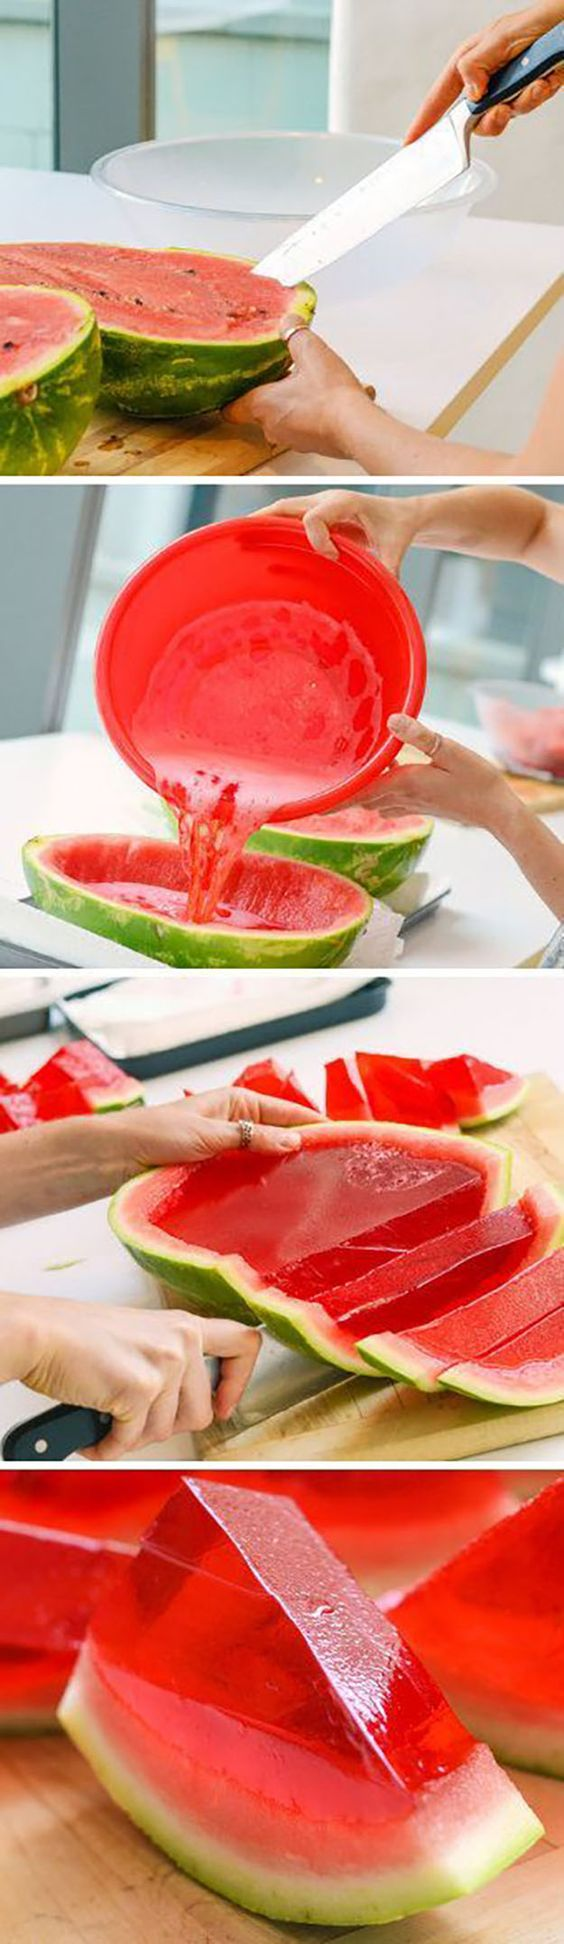 Easy Party Food Ideas | Make Ahead Cocktails | Watermelon  Jello Shot Recipe | DIY Projects & Crafts by DIY JOY at http://diyjoy.com/best-diy-party-food-ideas: